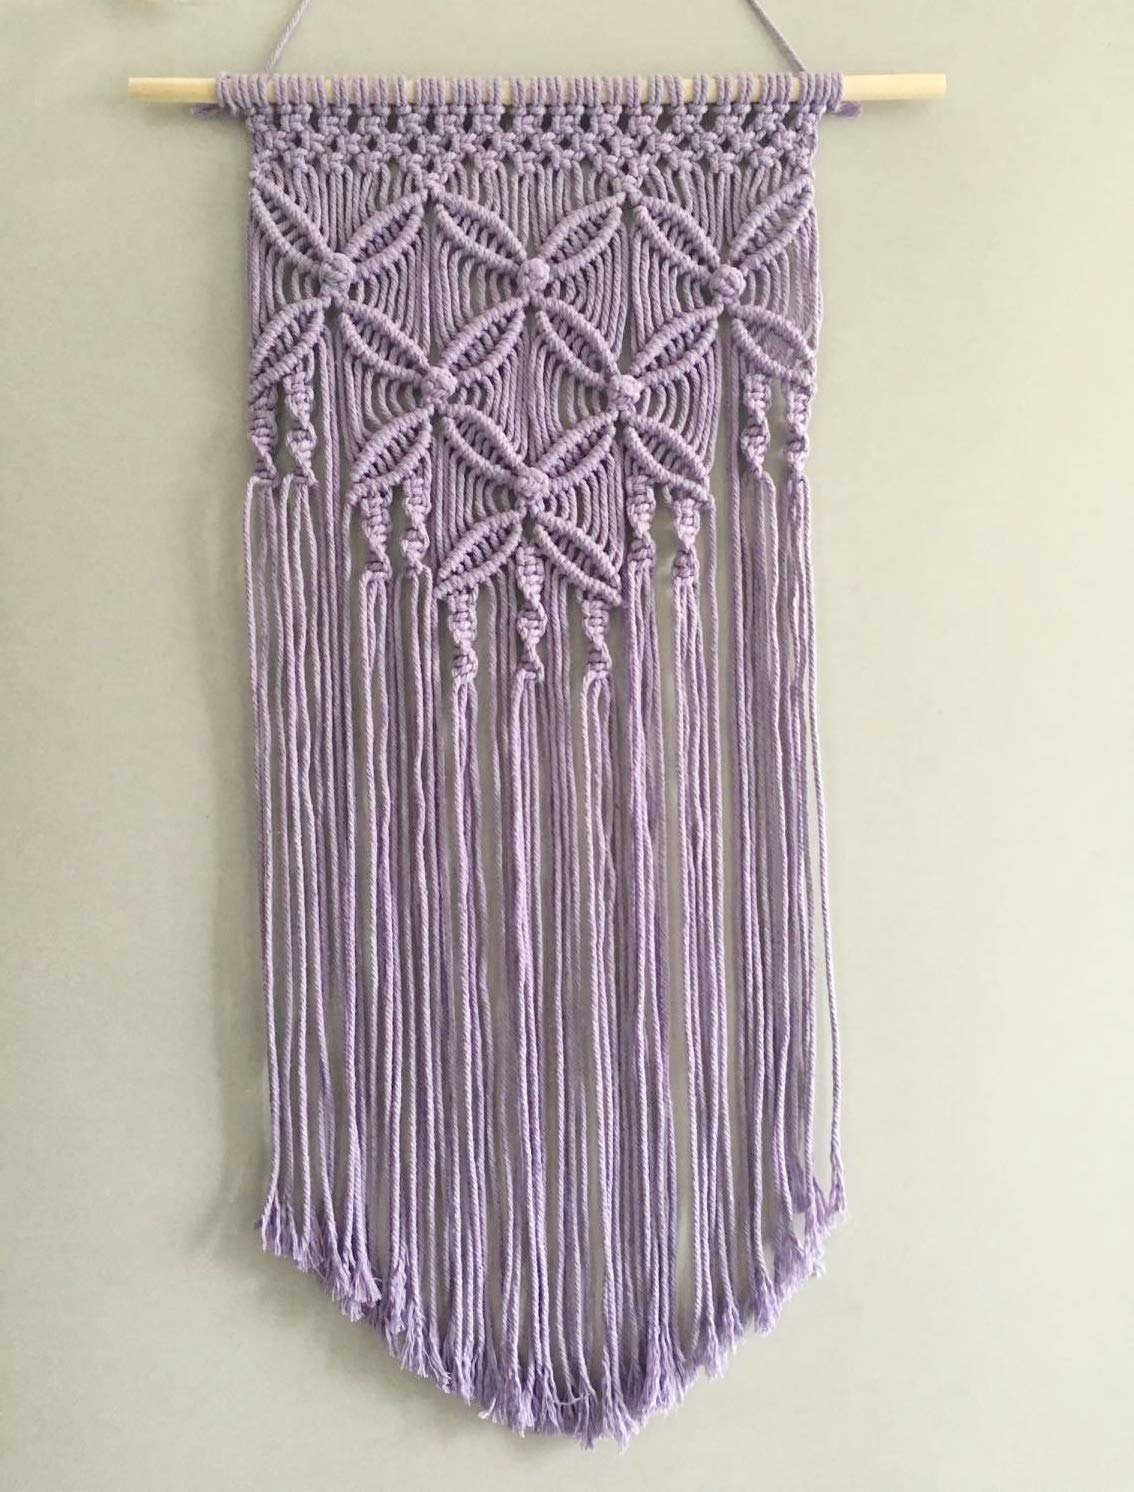 Winterdemoon Handmade Cotton Home Decor Macrame Wall Hanging Purple